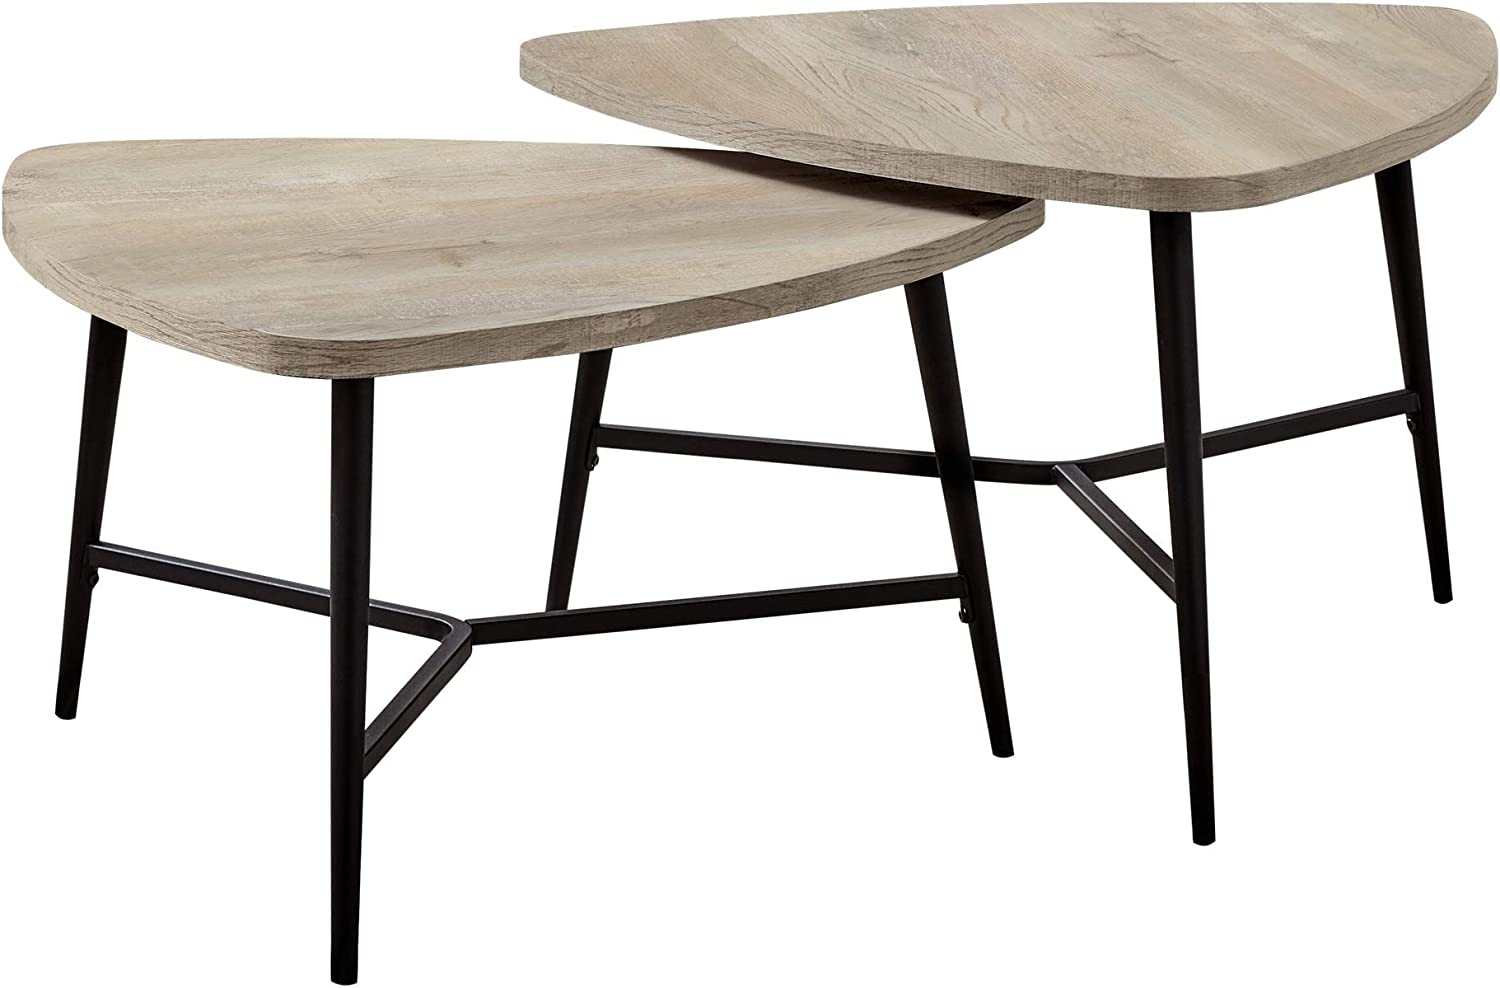 Ergode Table Set Limited Max 76% OFF time for free shipping - 2PCS Black Metal Reclaimed Taupe Wood